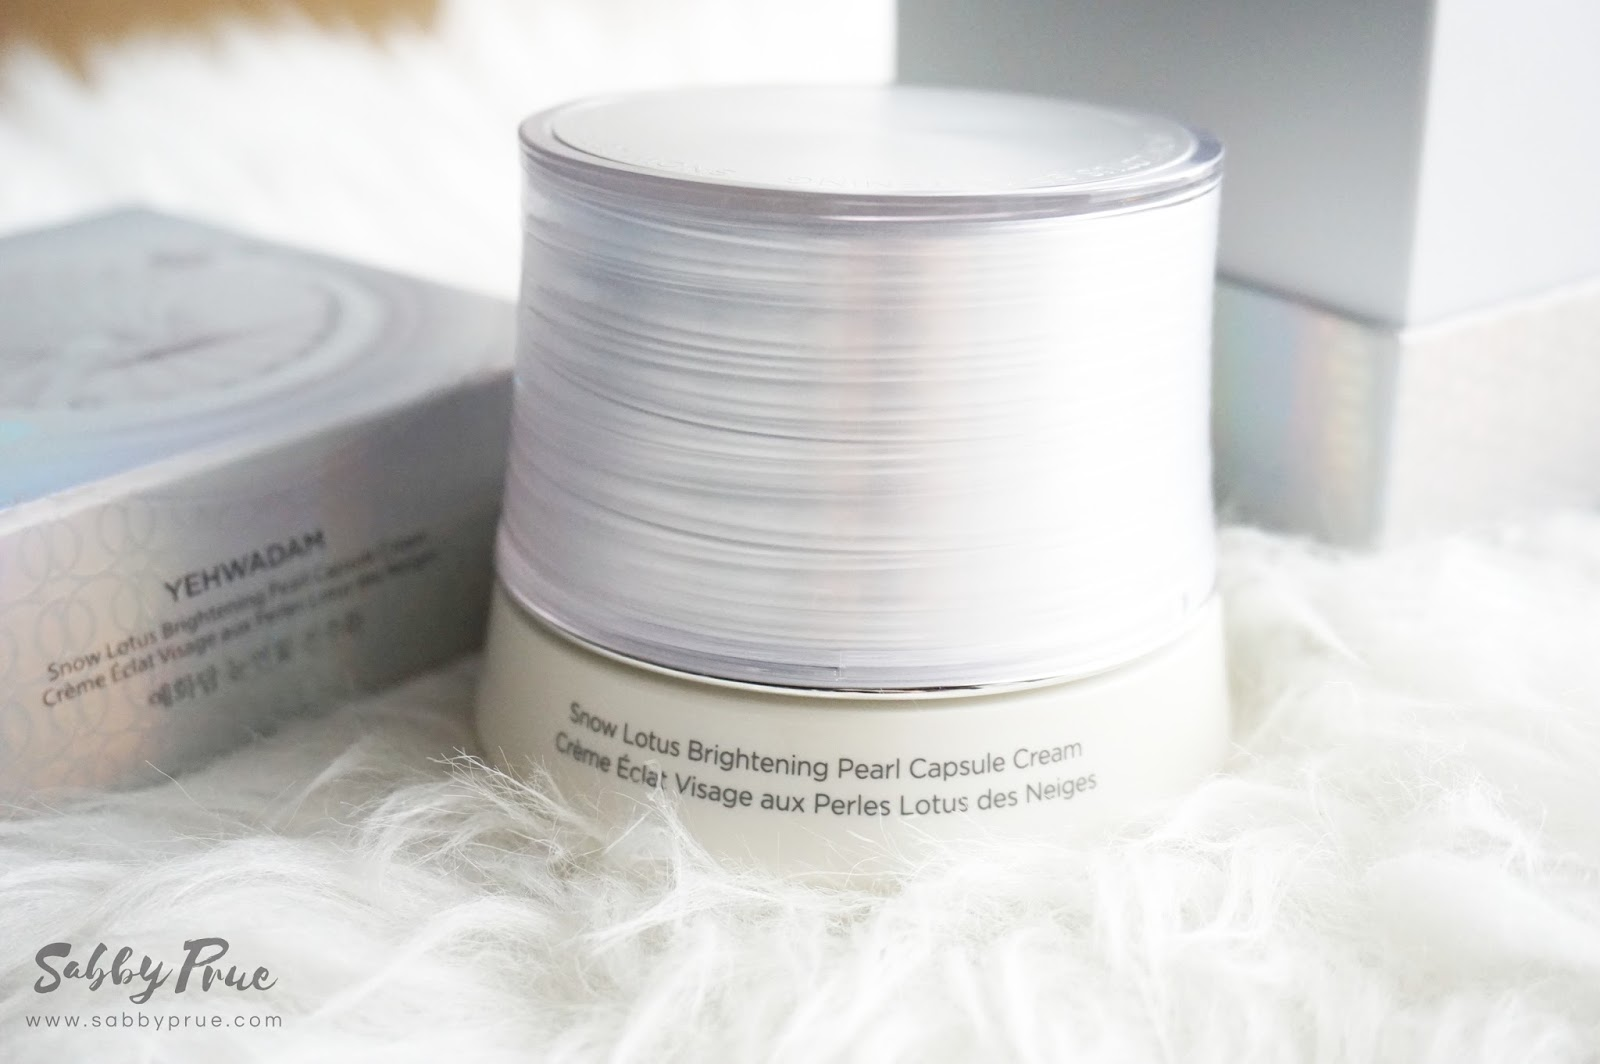 Beauty Review Thefaceshop Yehwadam Revitalizing Line Sabby Wardah Double Function Kit 45 G Choice If You Want To Re Vitalize And Energize Your Skin But Are In The Look Out For Anti Wrinkle Brightening Serum